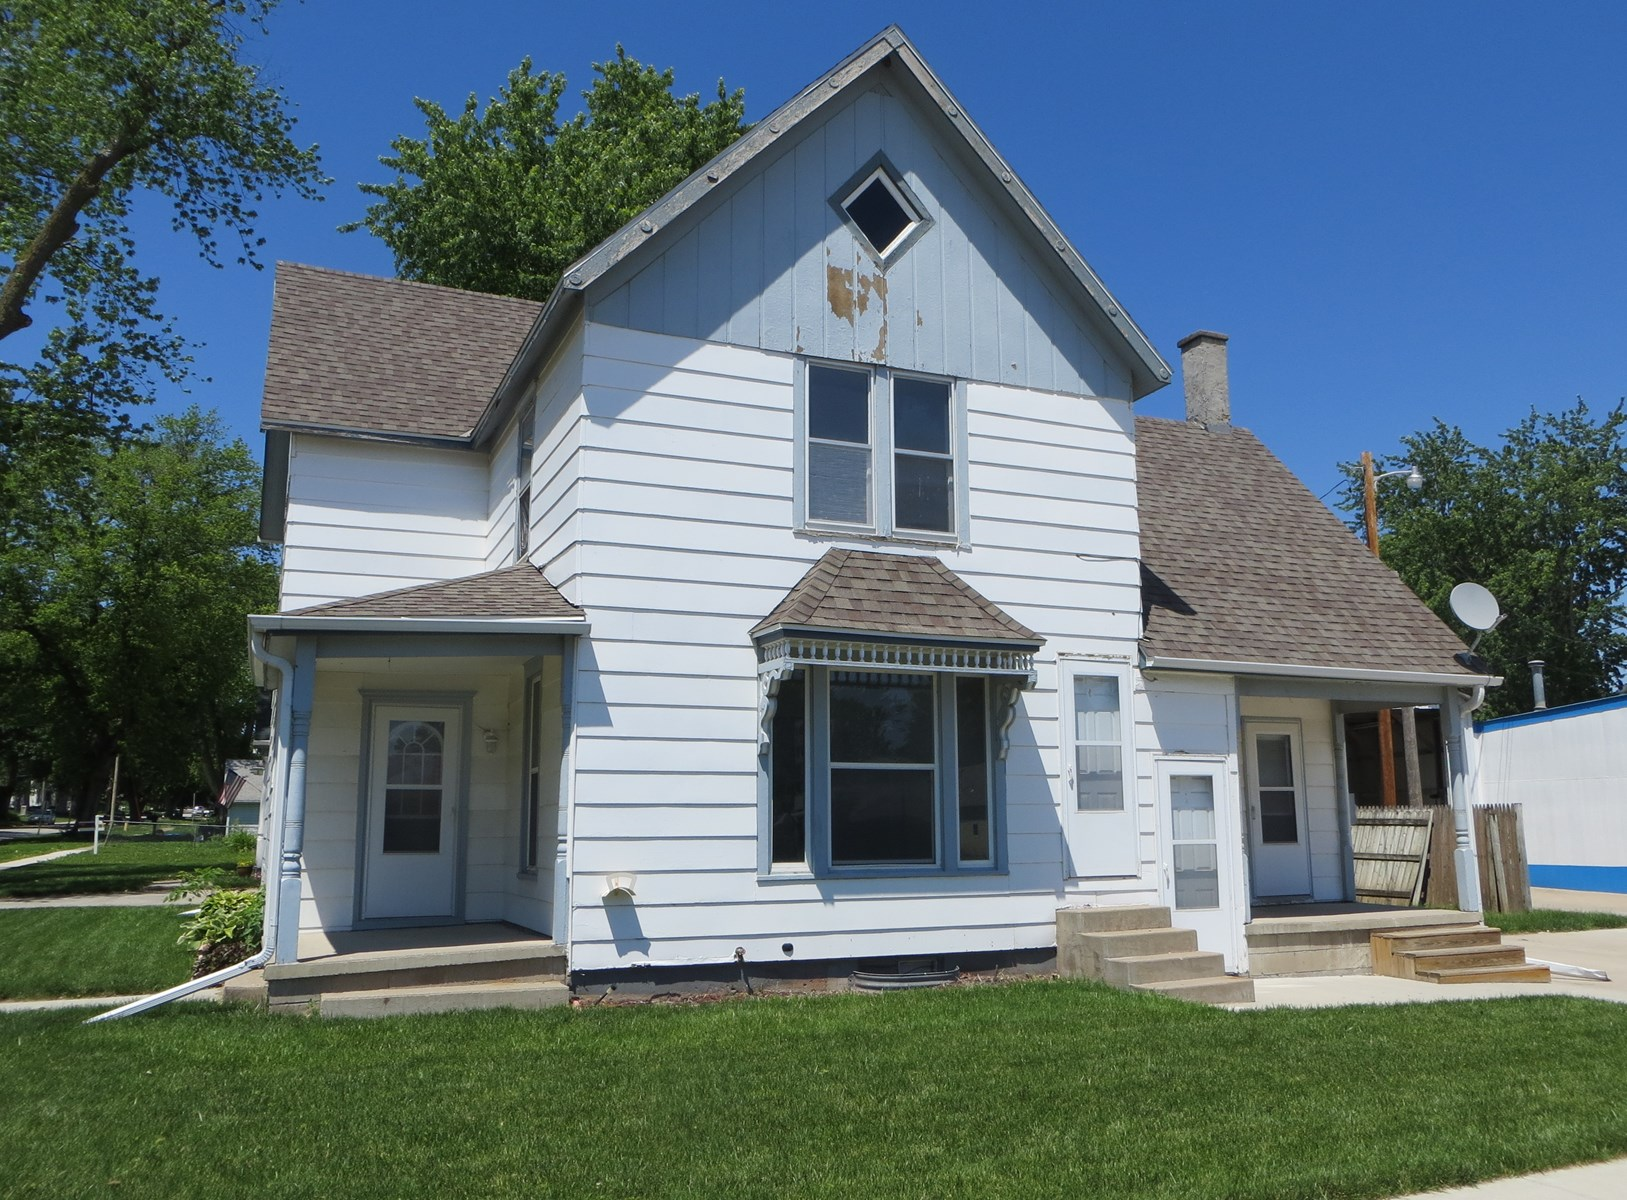 4BR 2BA house for Sale, Logan, IA, Harrison Co.